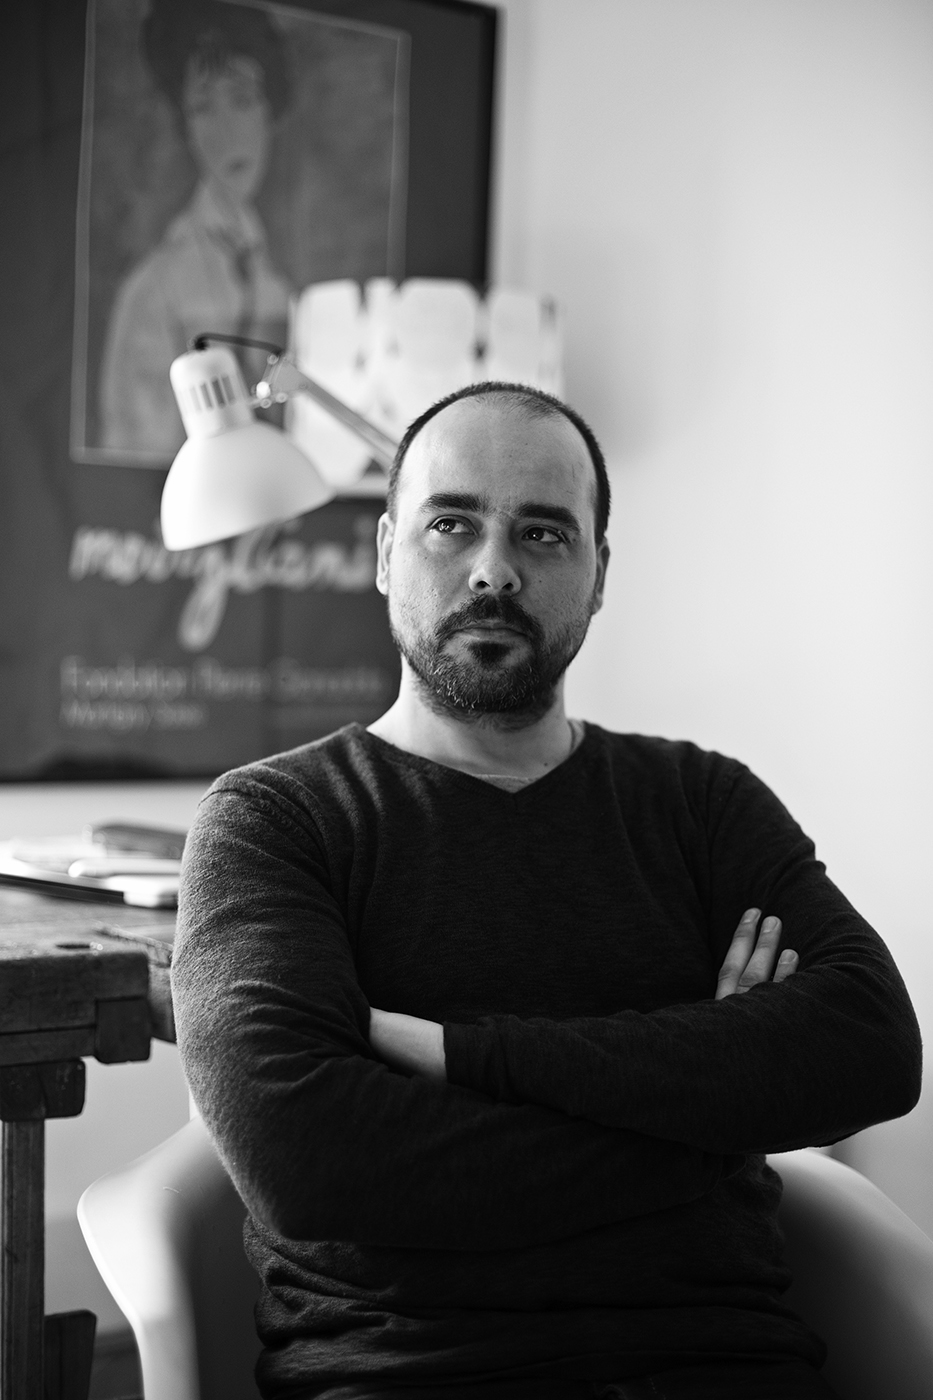 Ciprian Andrei, self-taught product designer and founder of Atelier Mustata